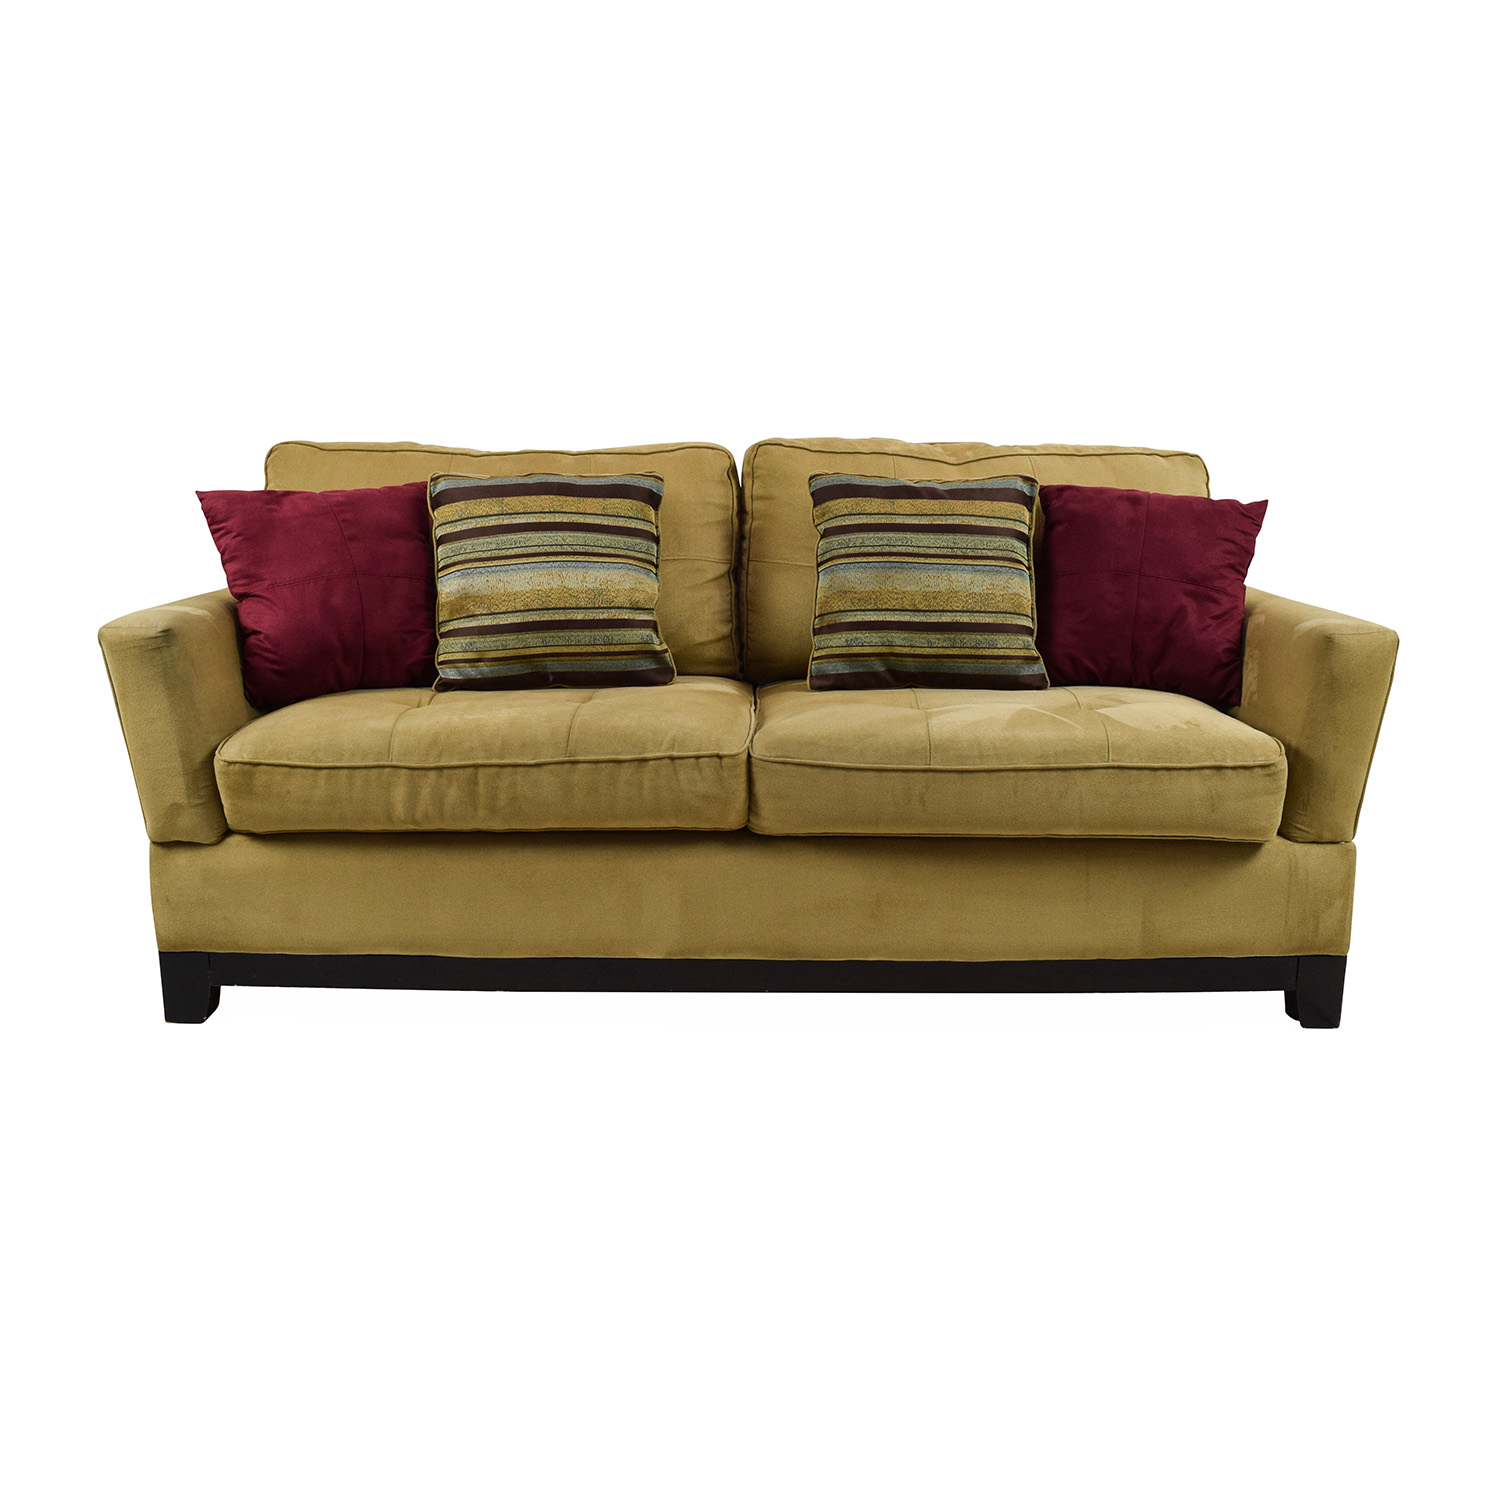 78 Off Jennifer Furniture Jennifer Convertibles Tan